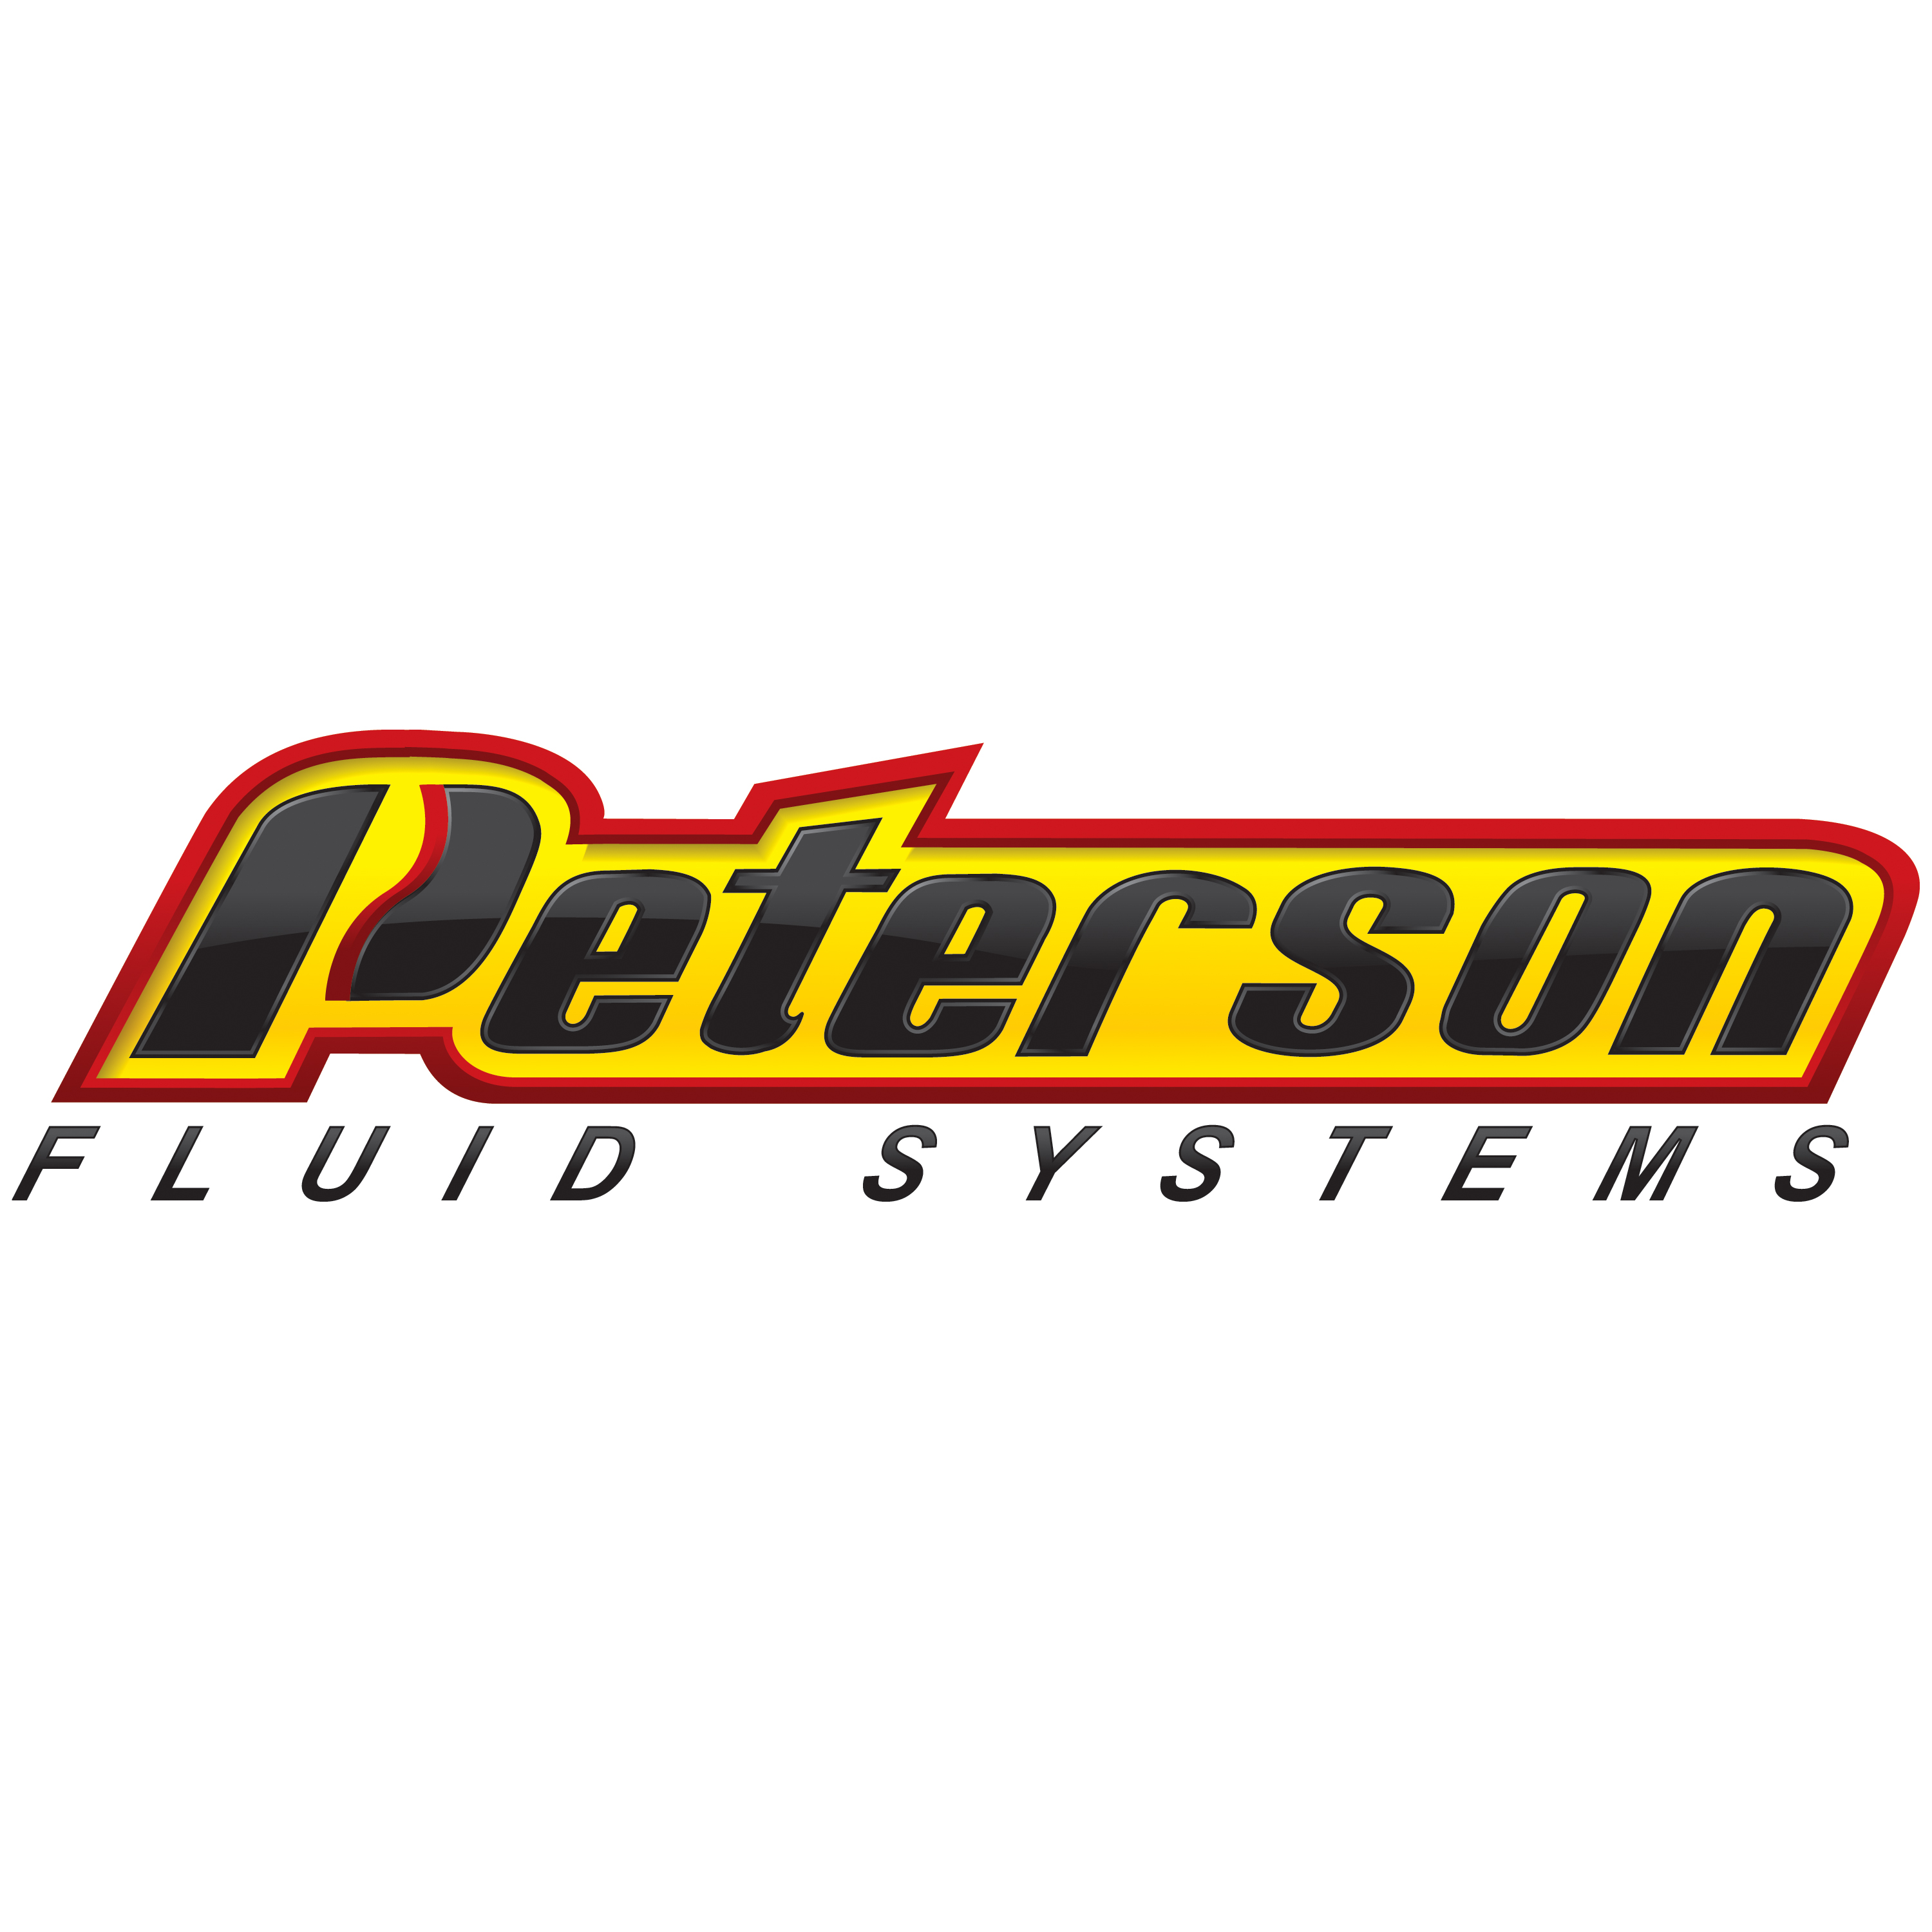 PETERSON FLUID SYSTEMS, INC.